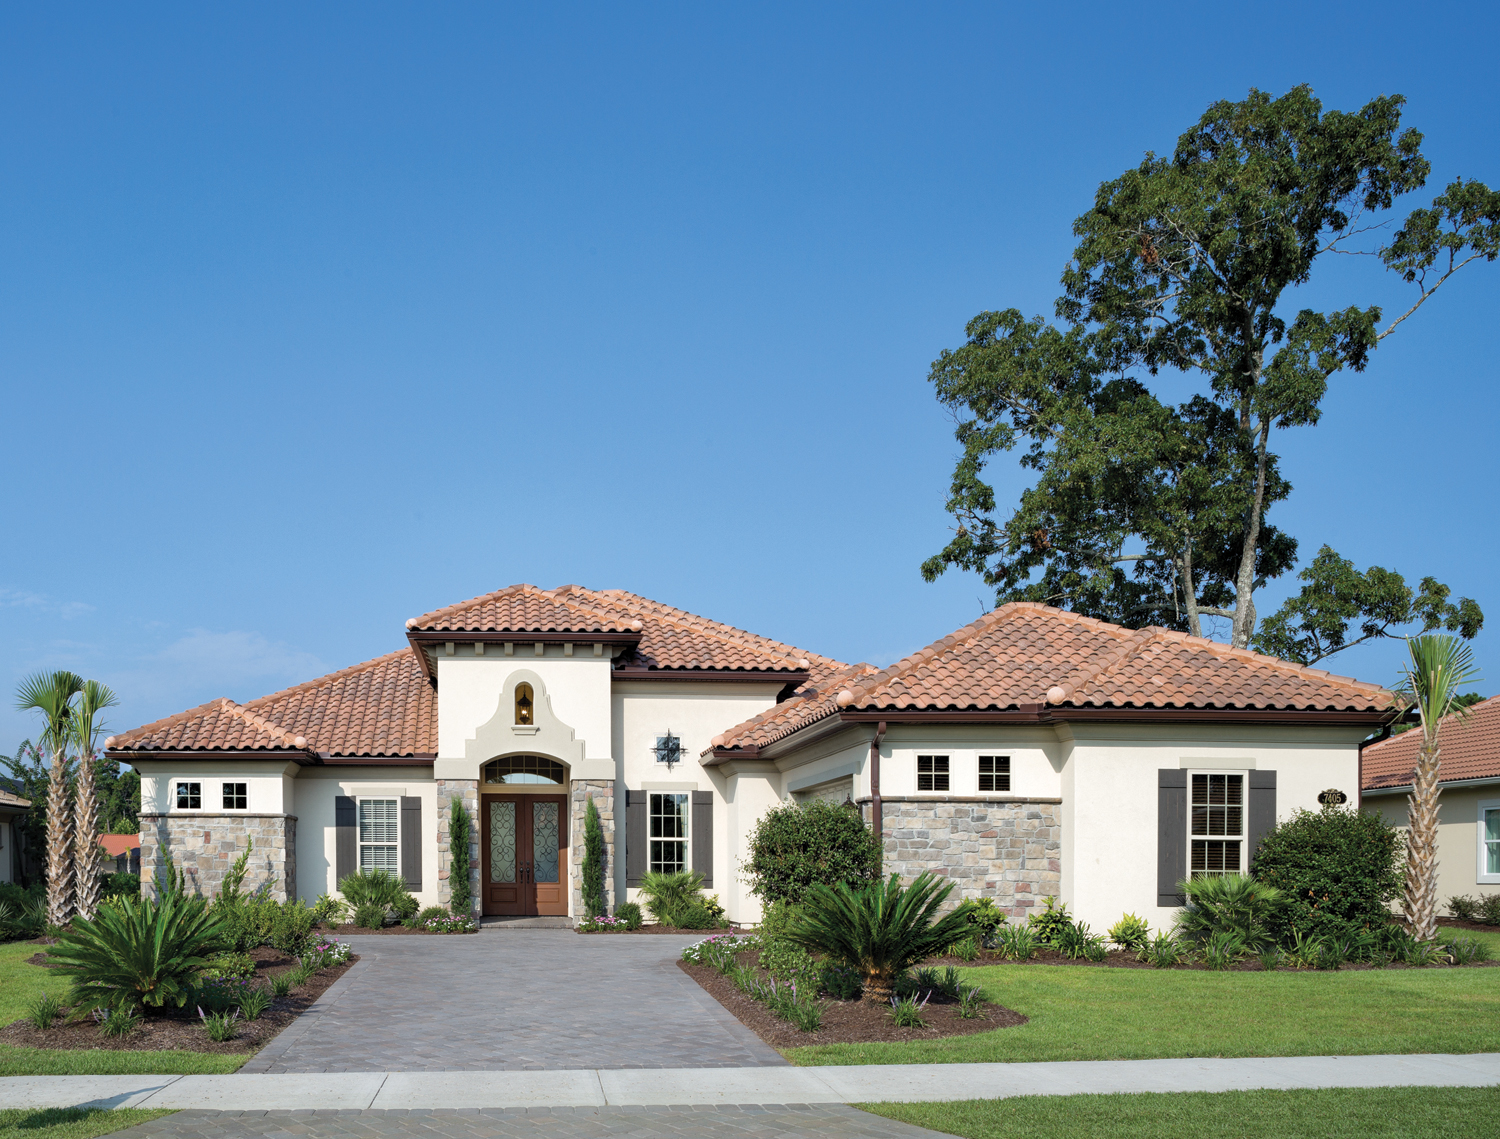 New arthur rutenberg homes model opened in myrtle beach for Custom home plans florida